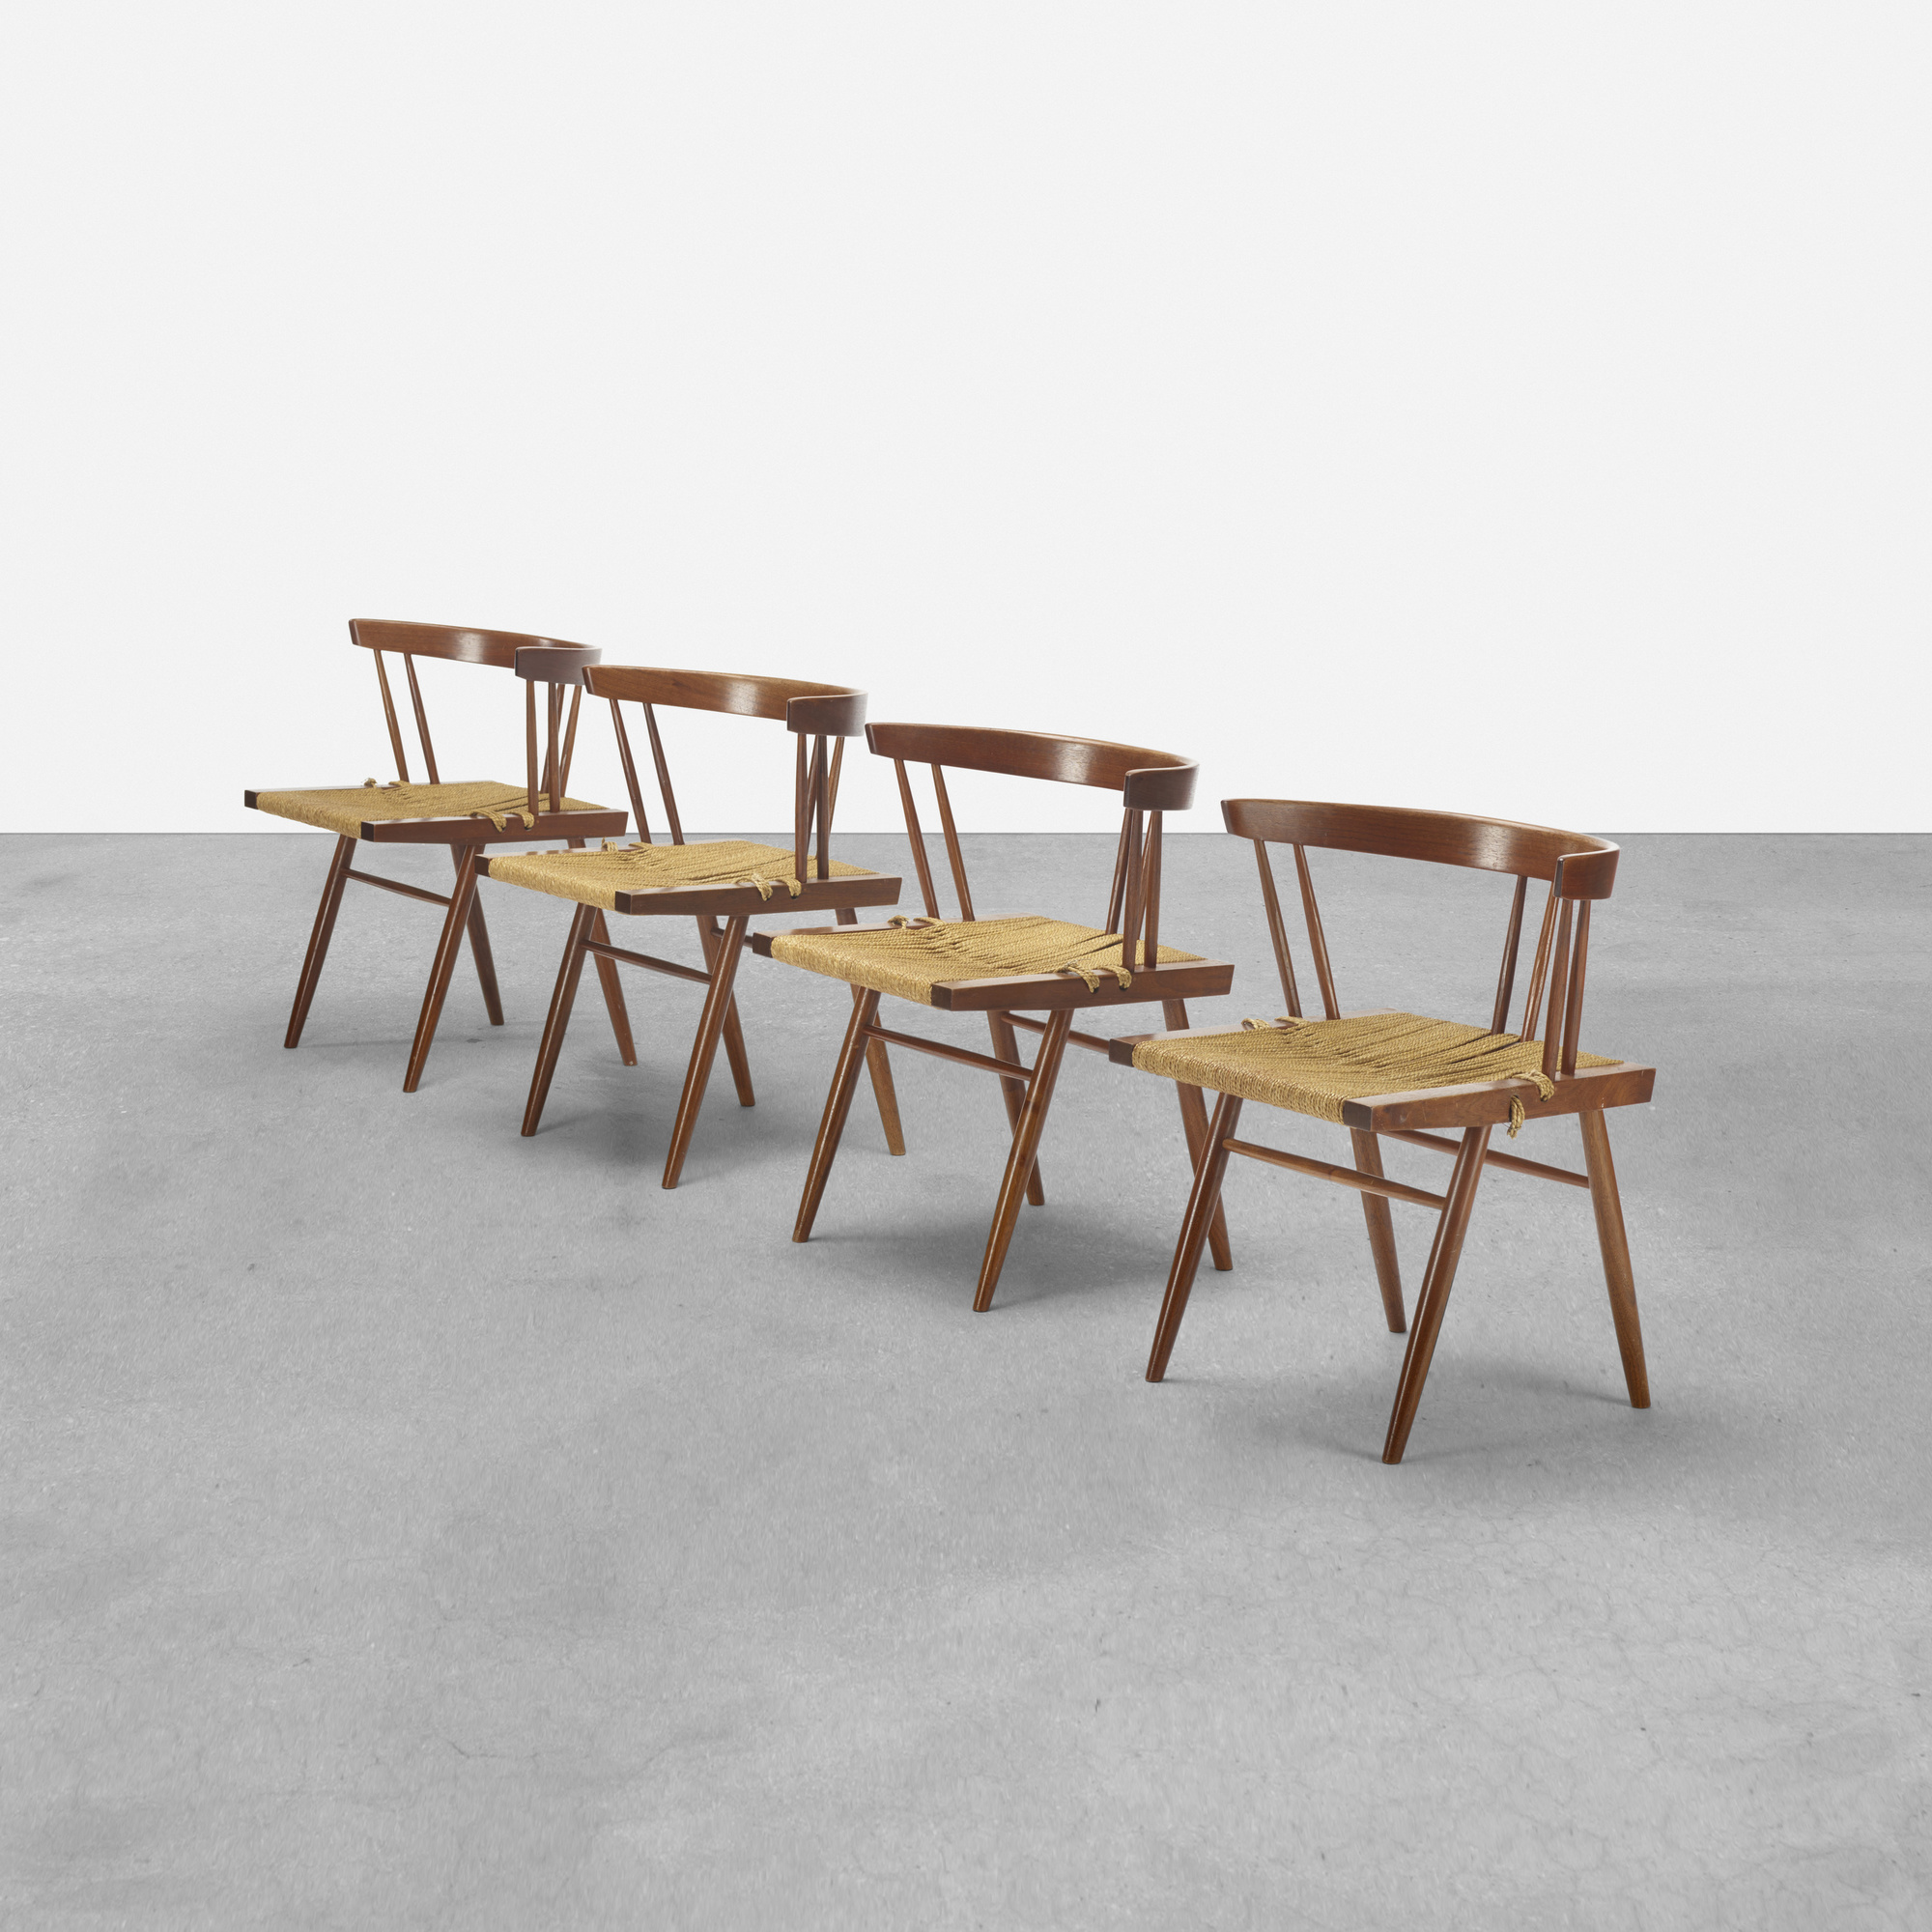 104: George Nakashima / Grass-Seated chairs, set of four (1 of 4)